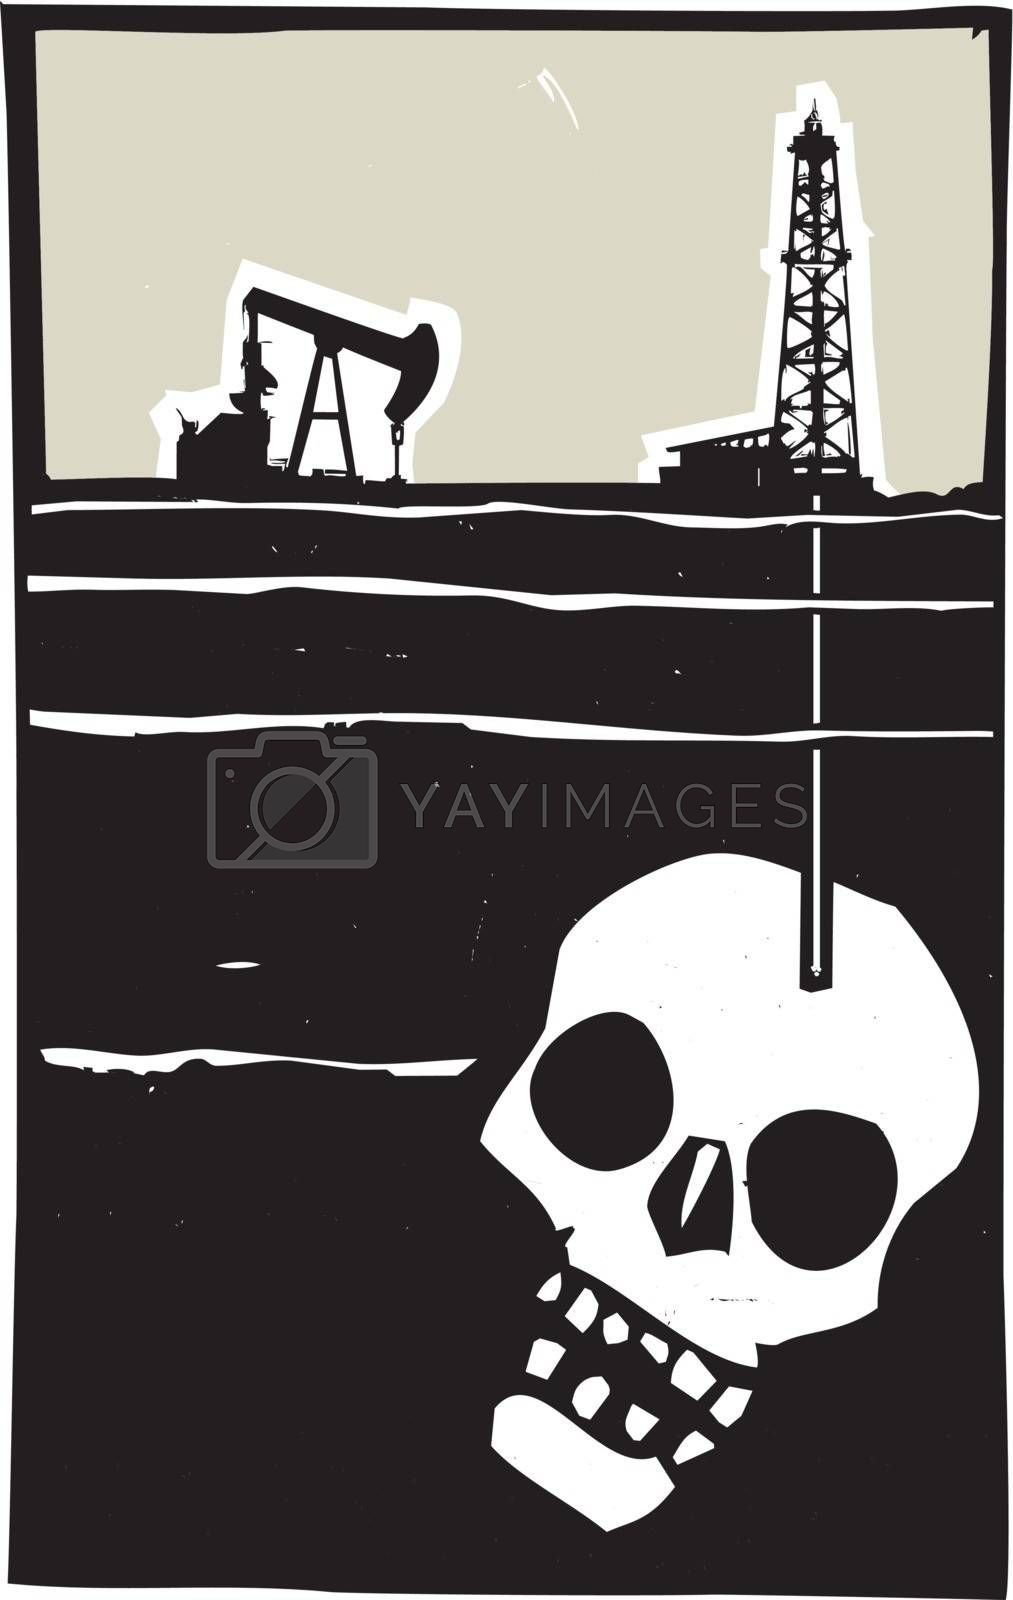 Woodcut style image Oil well drilling down into the earth and into a human skull.